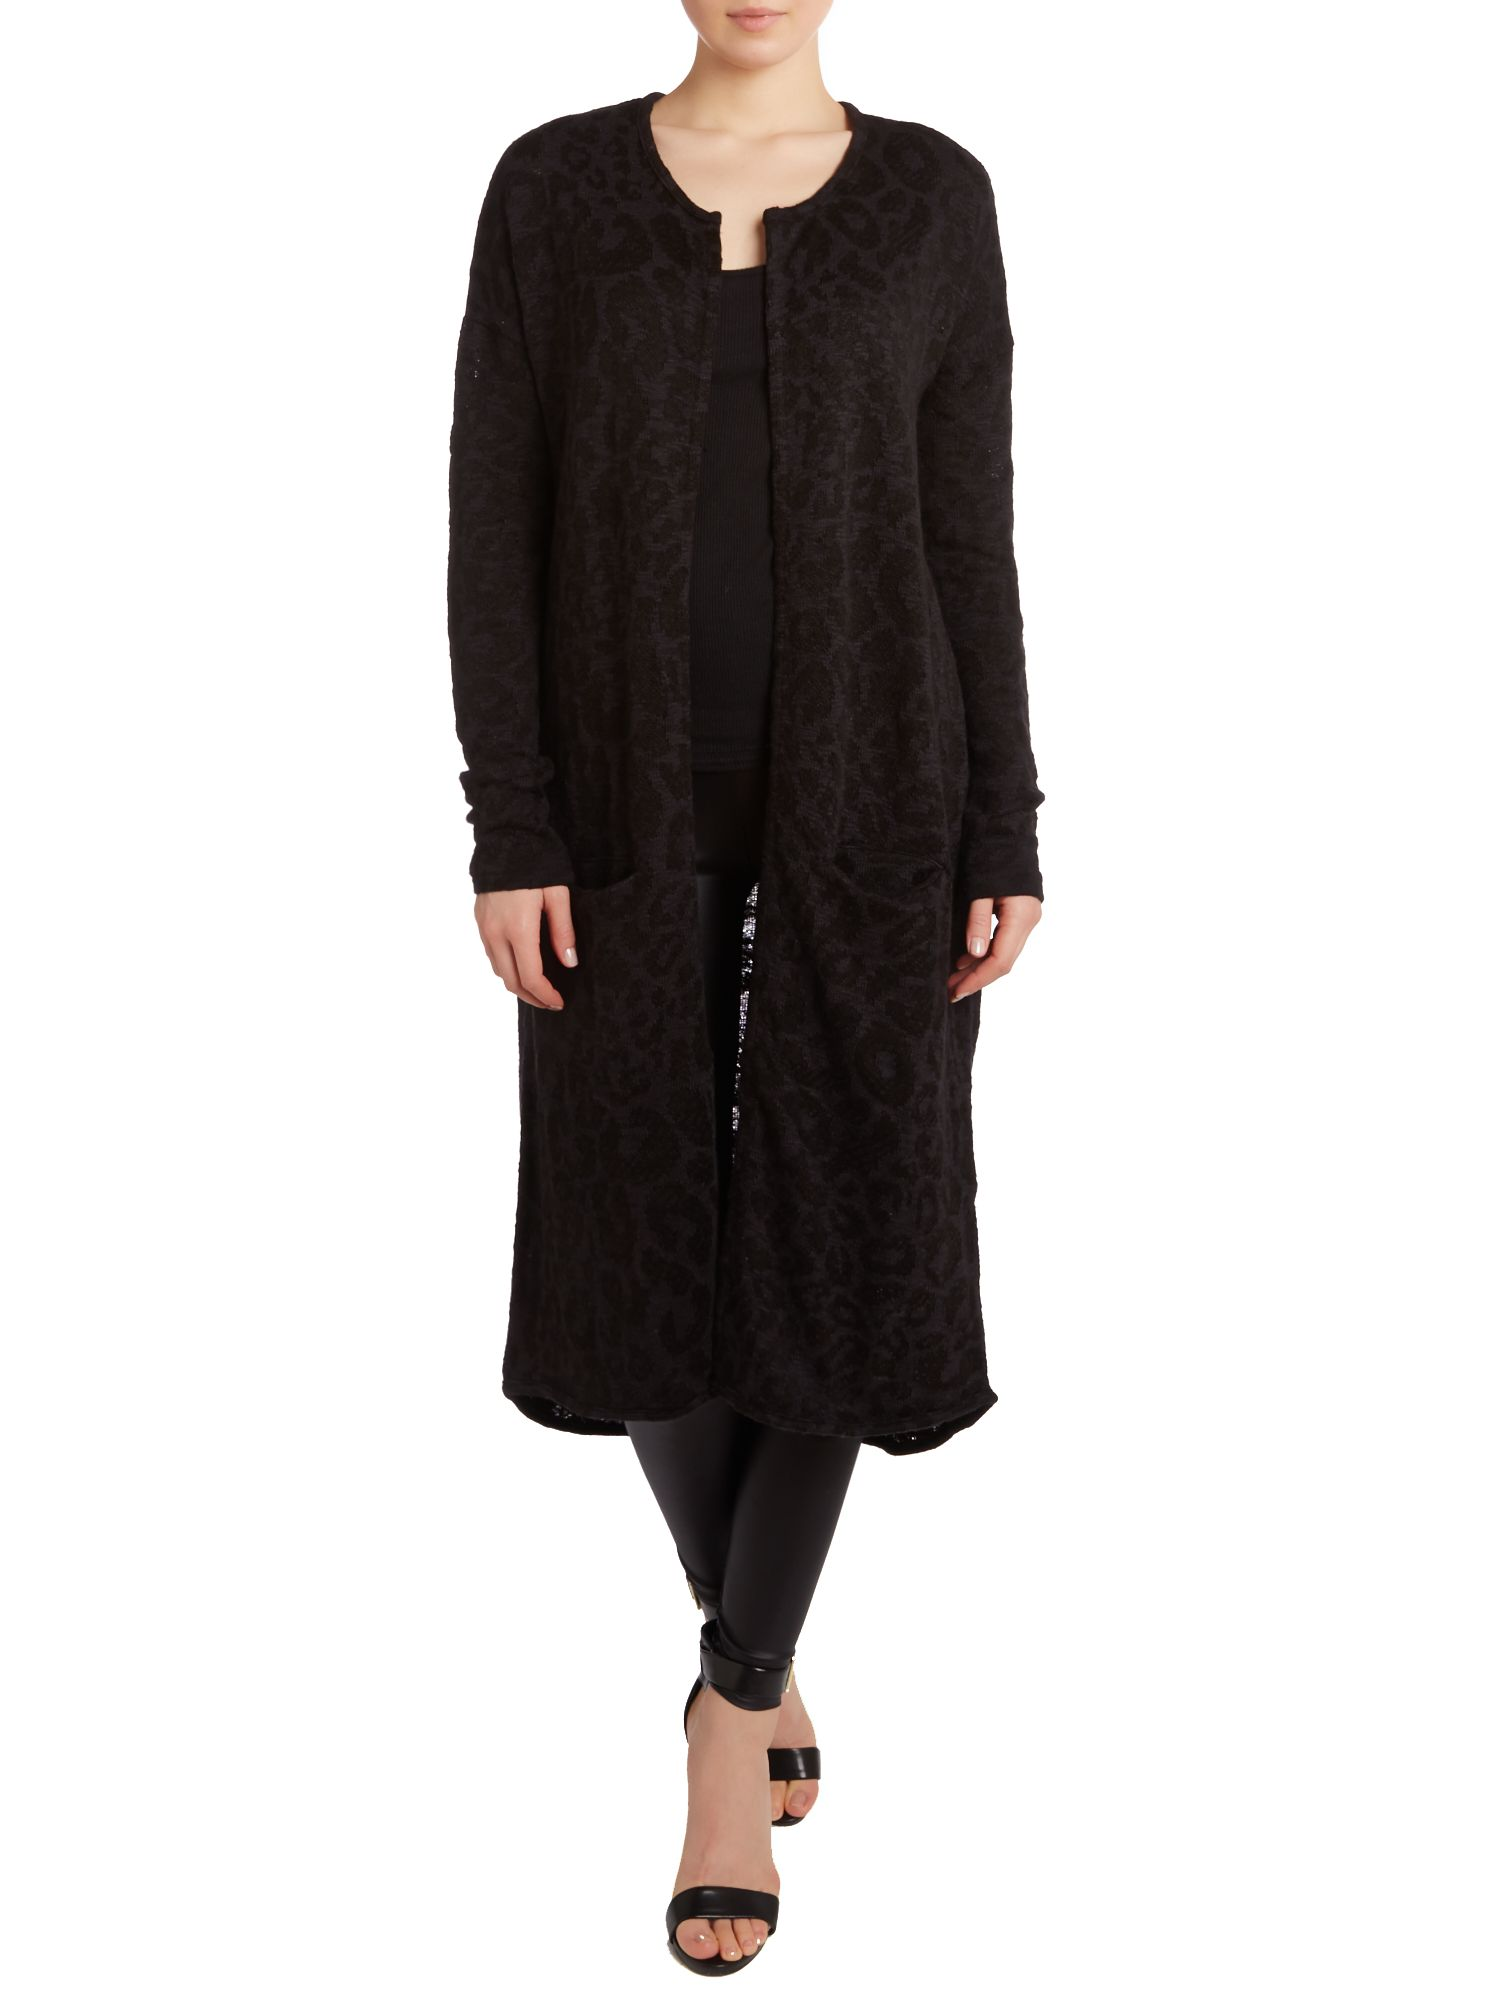 Leo knit long cardigan